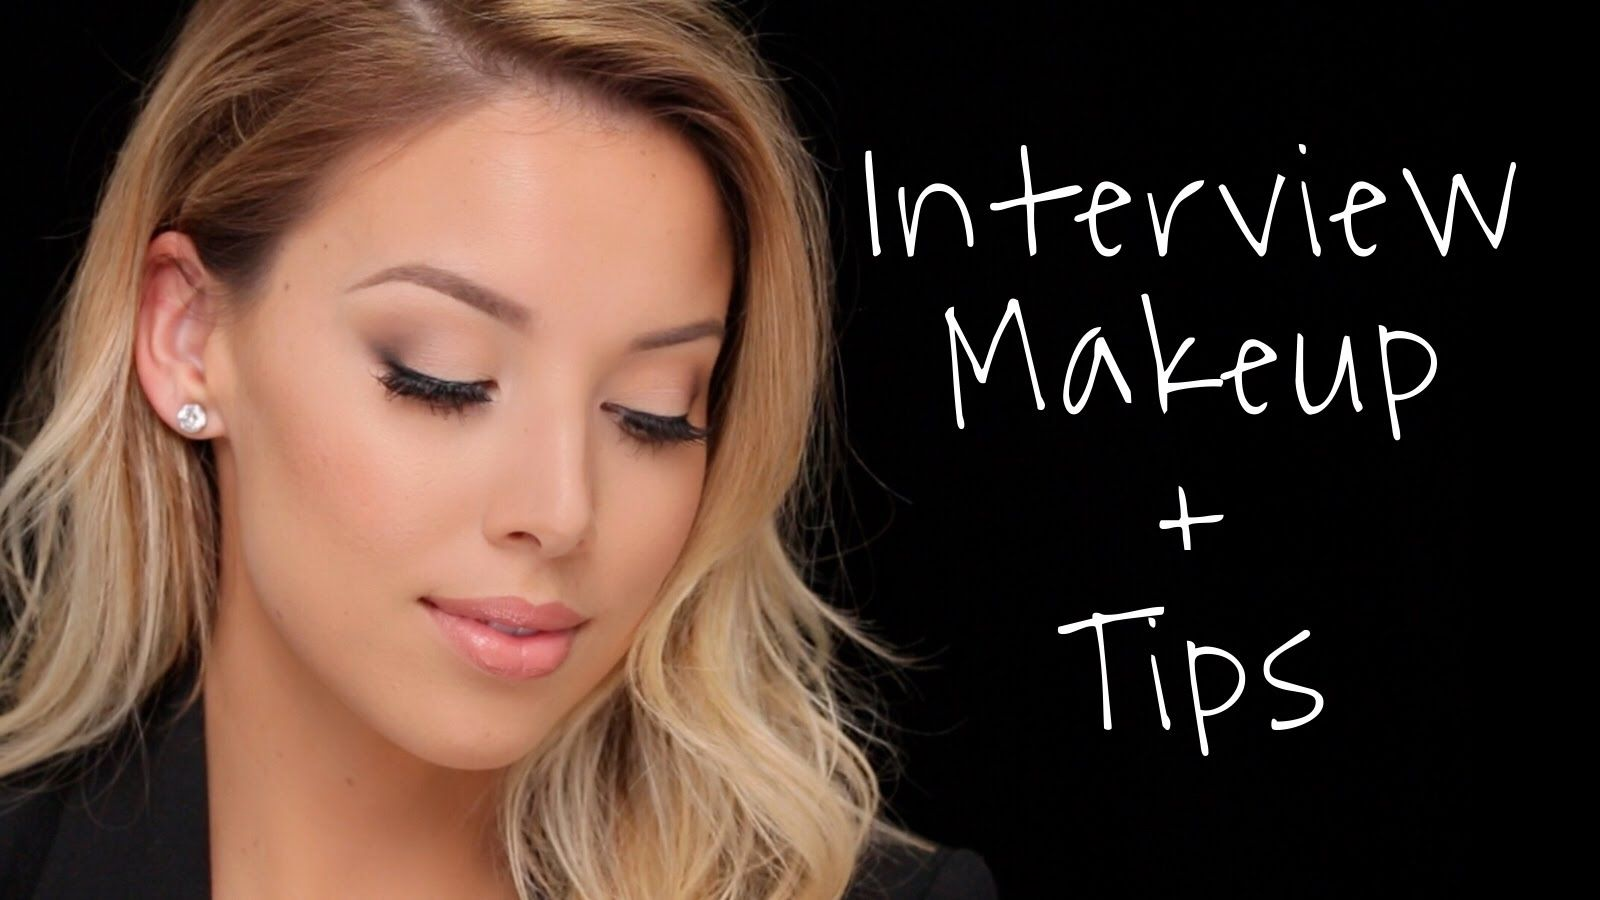 INTERVIEW MAKEUP lustrelux 35O natural everyday